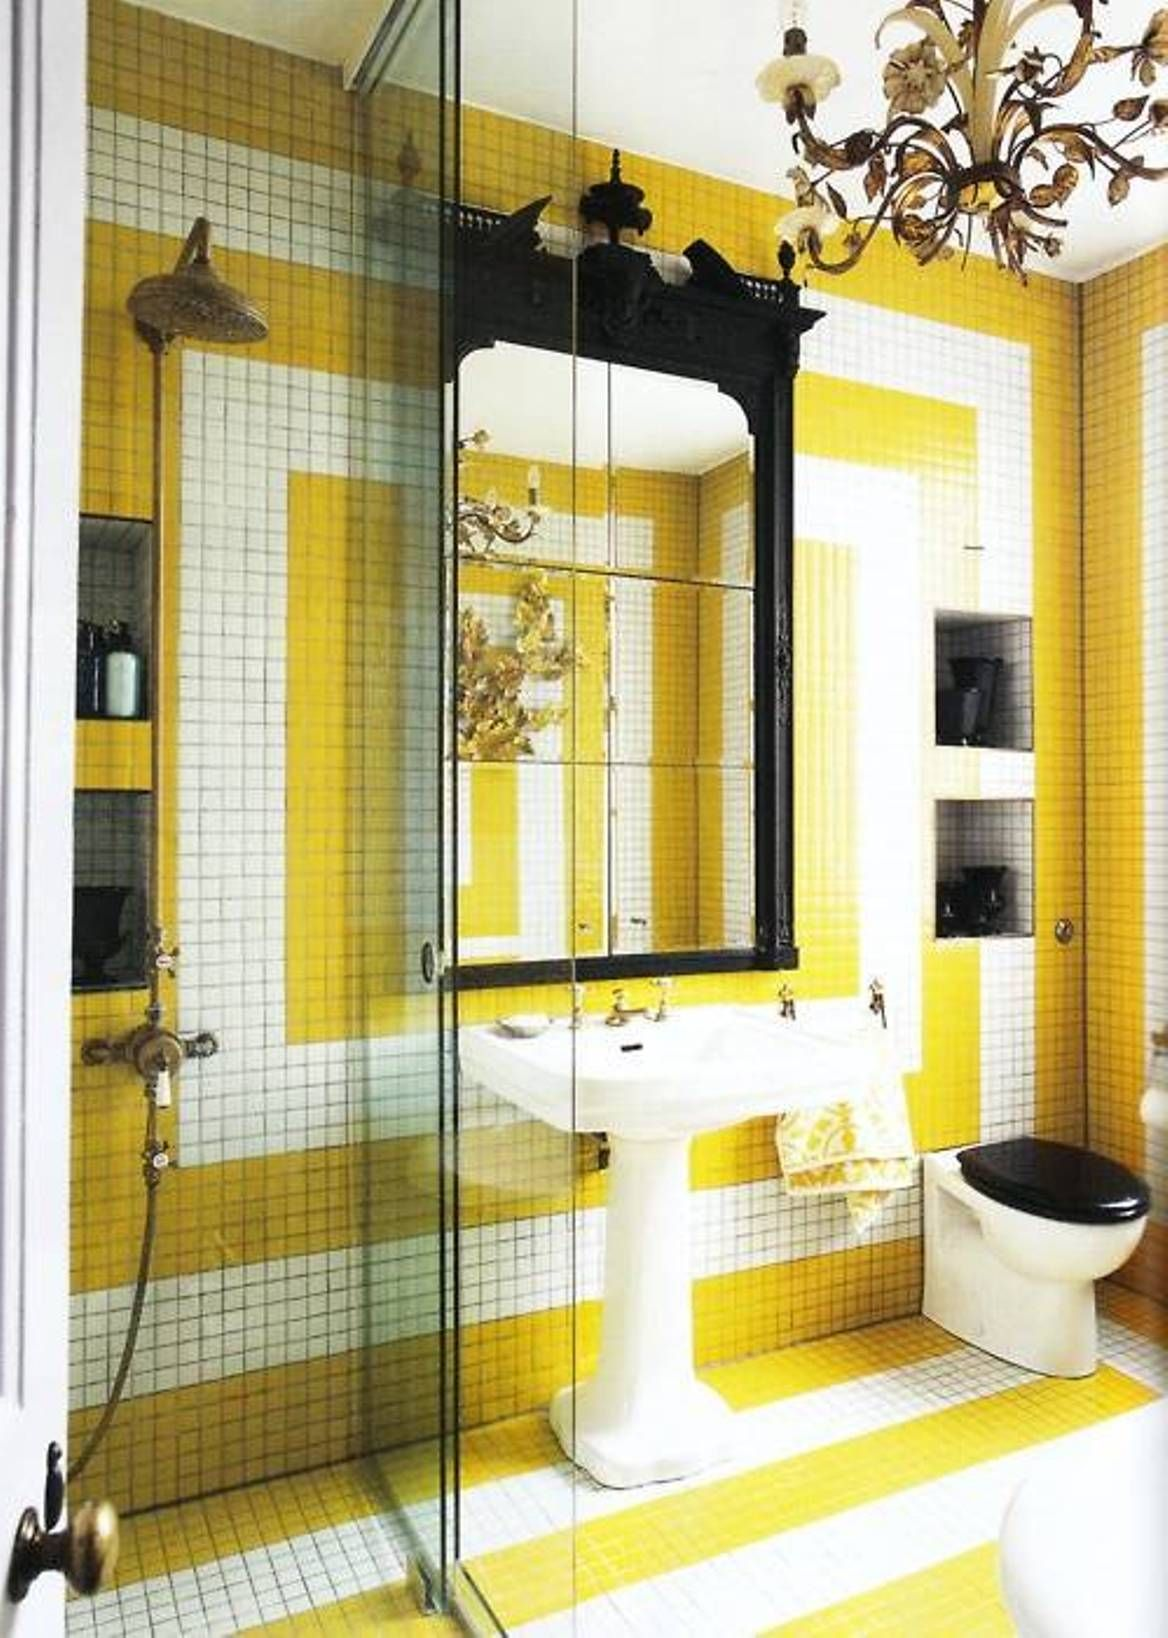 Attractive Bathroom Tiles | Pinterest | Bathroom tiling and Spaces